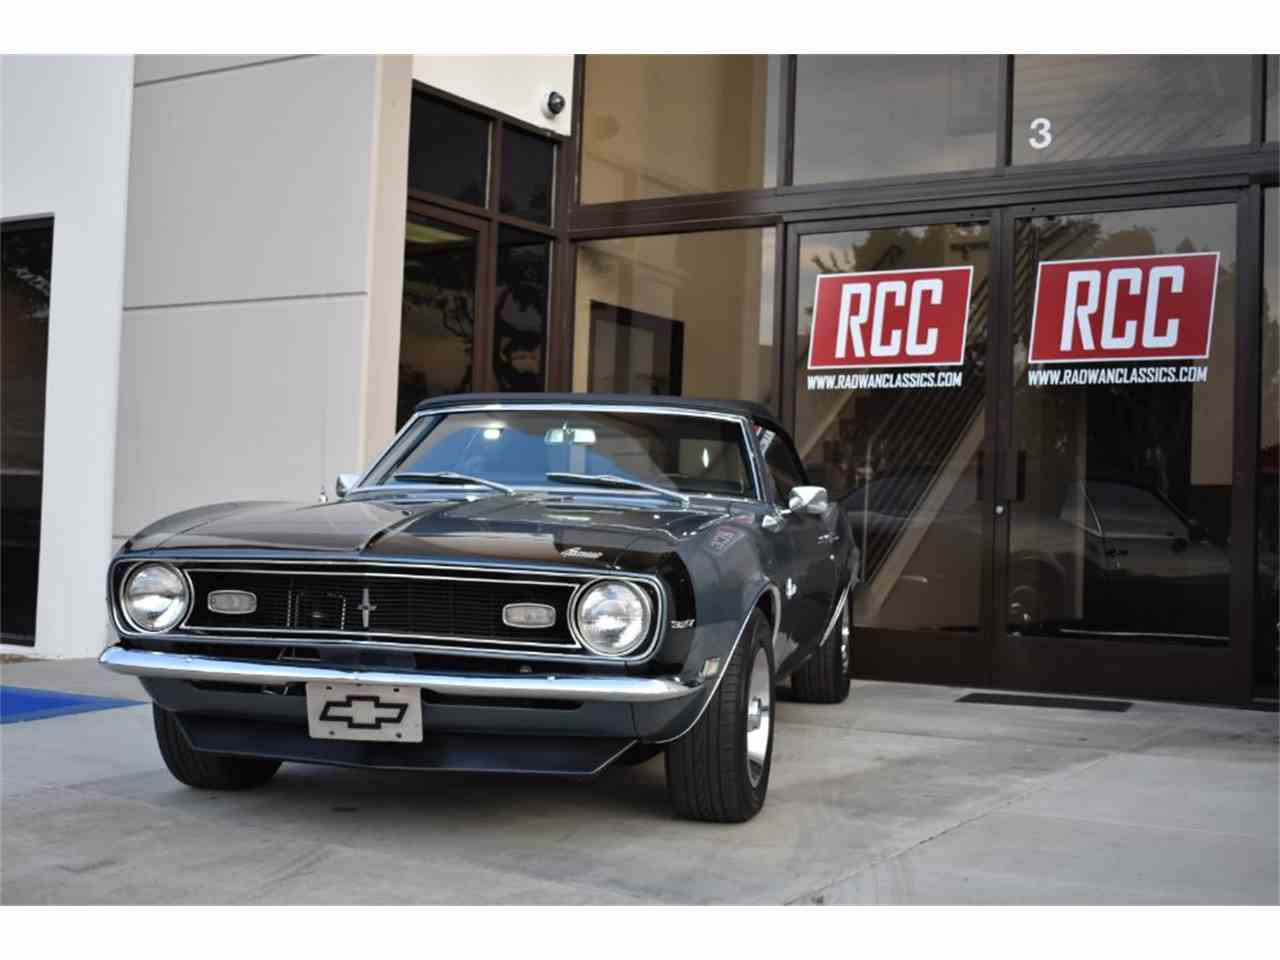 Large Picture of 1968 Chevrolet Camaro located in California Offered by Radwan Classic Cars - MO9U